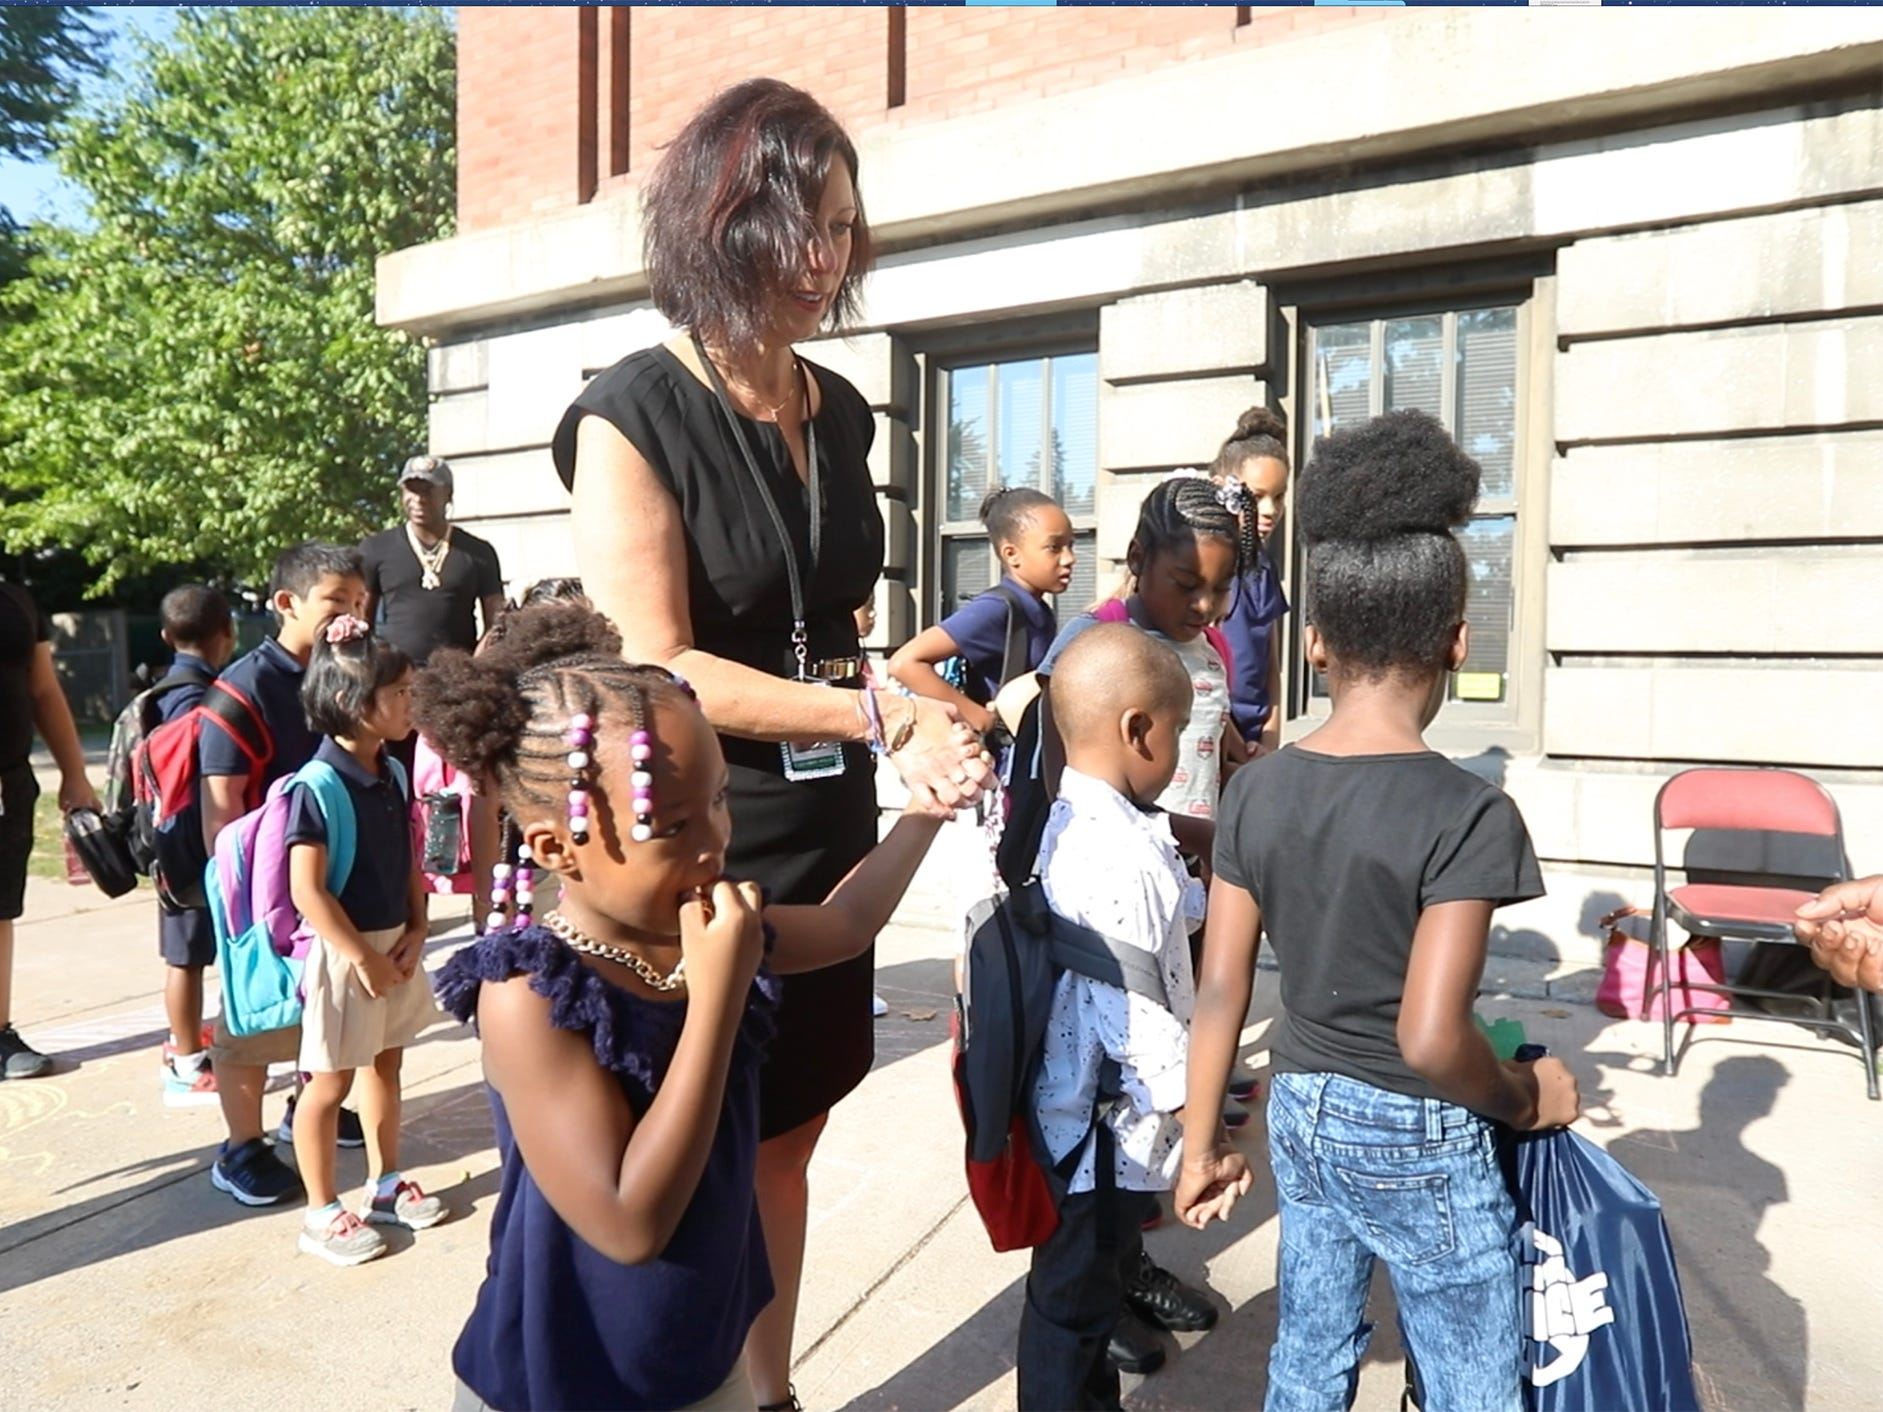 Christine Caluorie-Poles, principal at RISE Community School, helps a younger student enter on the first day of classes.